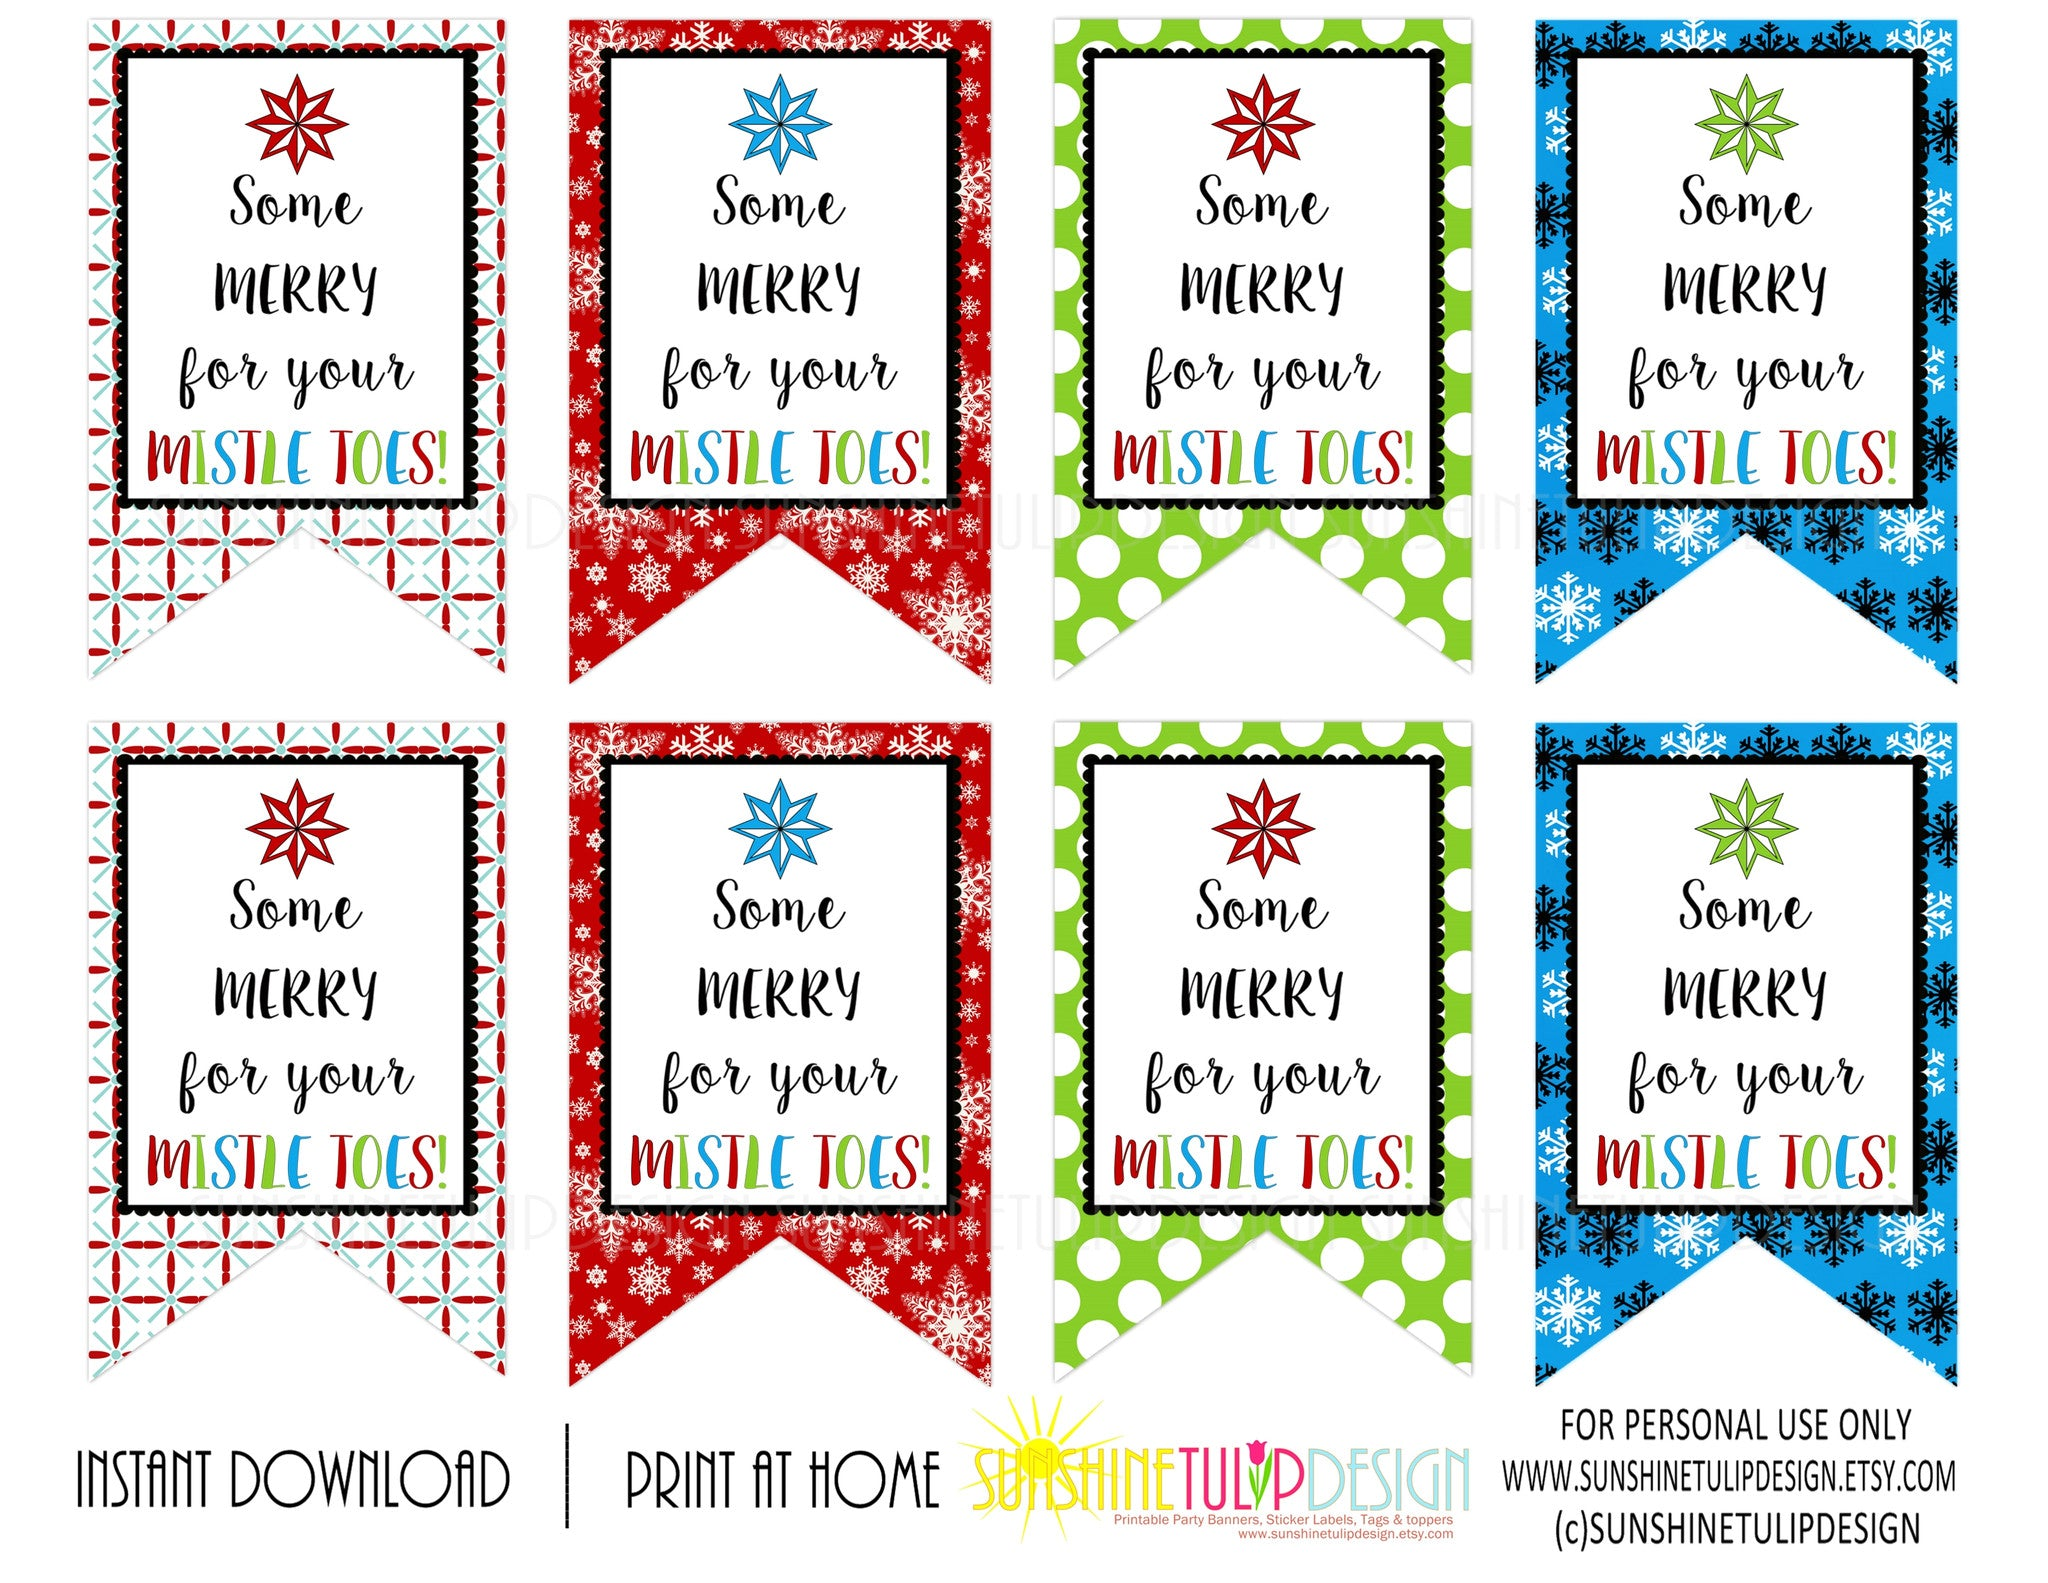 photo relating to Cute Gift Tags Printable named Printable Trainer Appreciation tags, For Your Mistletoes Present Tags, Nail Polish Present Tags through SUNSHINETULIPDESIGN